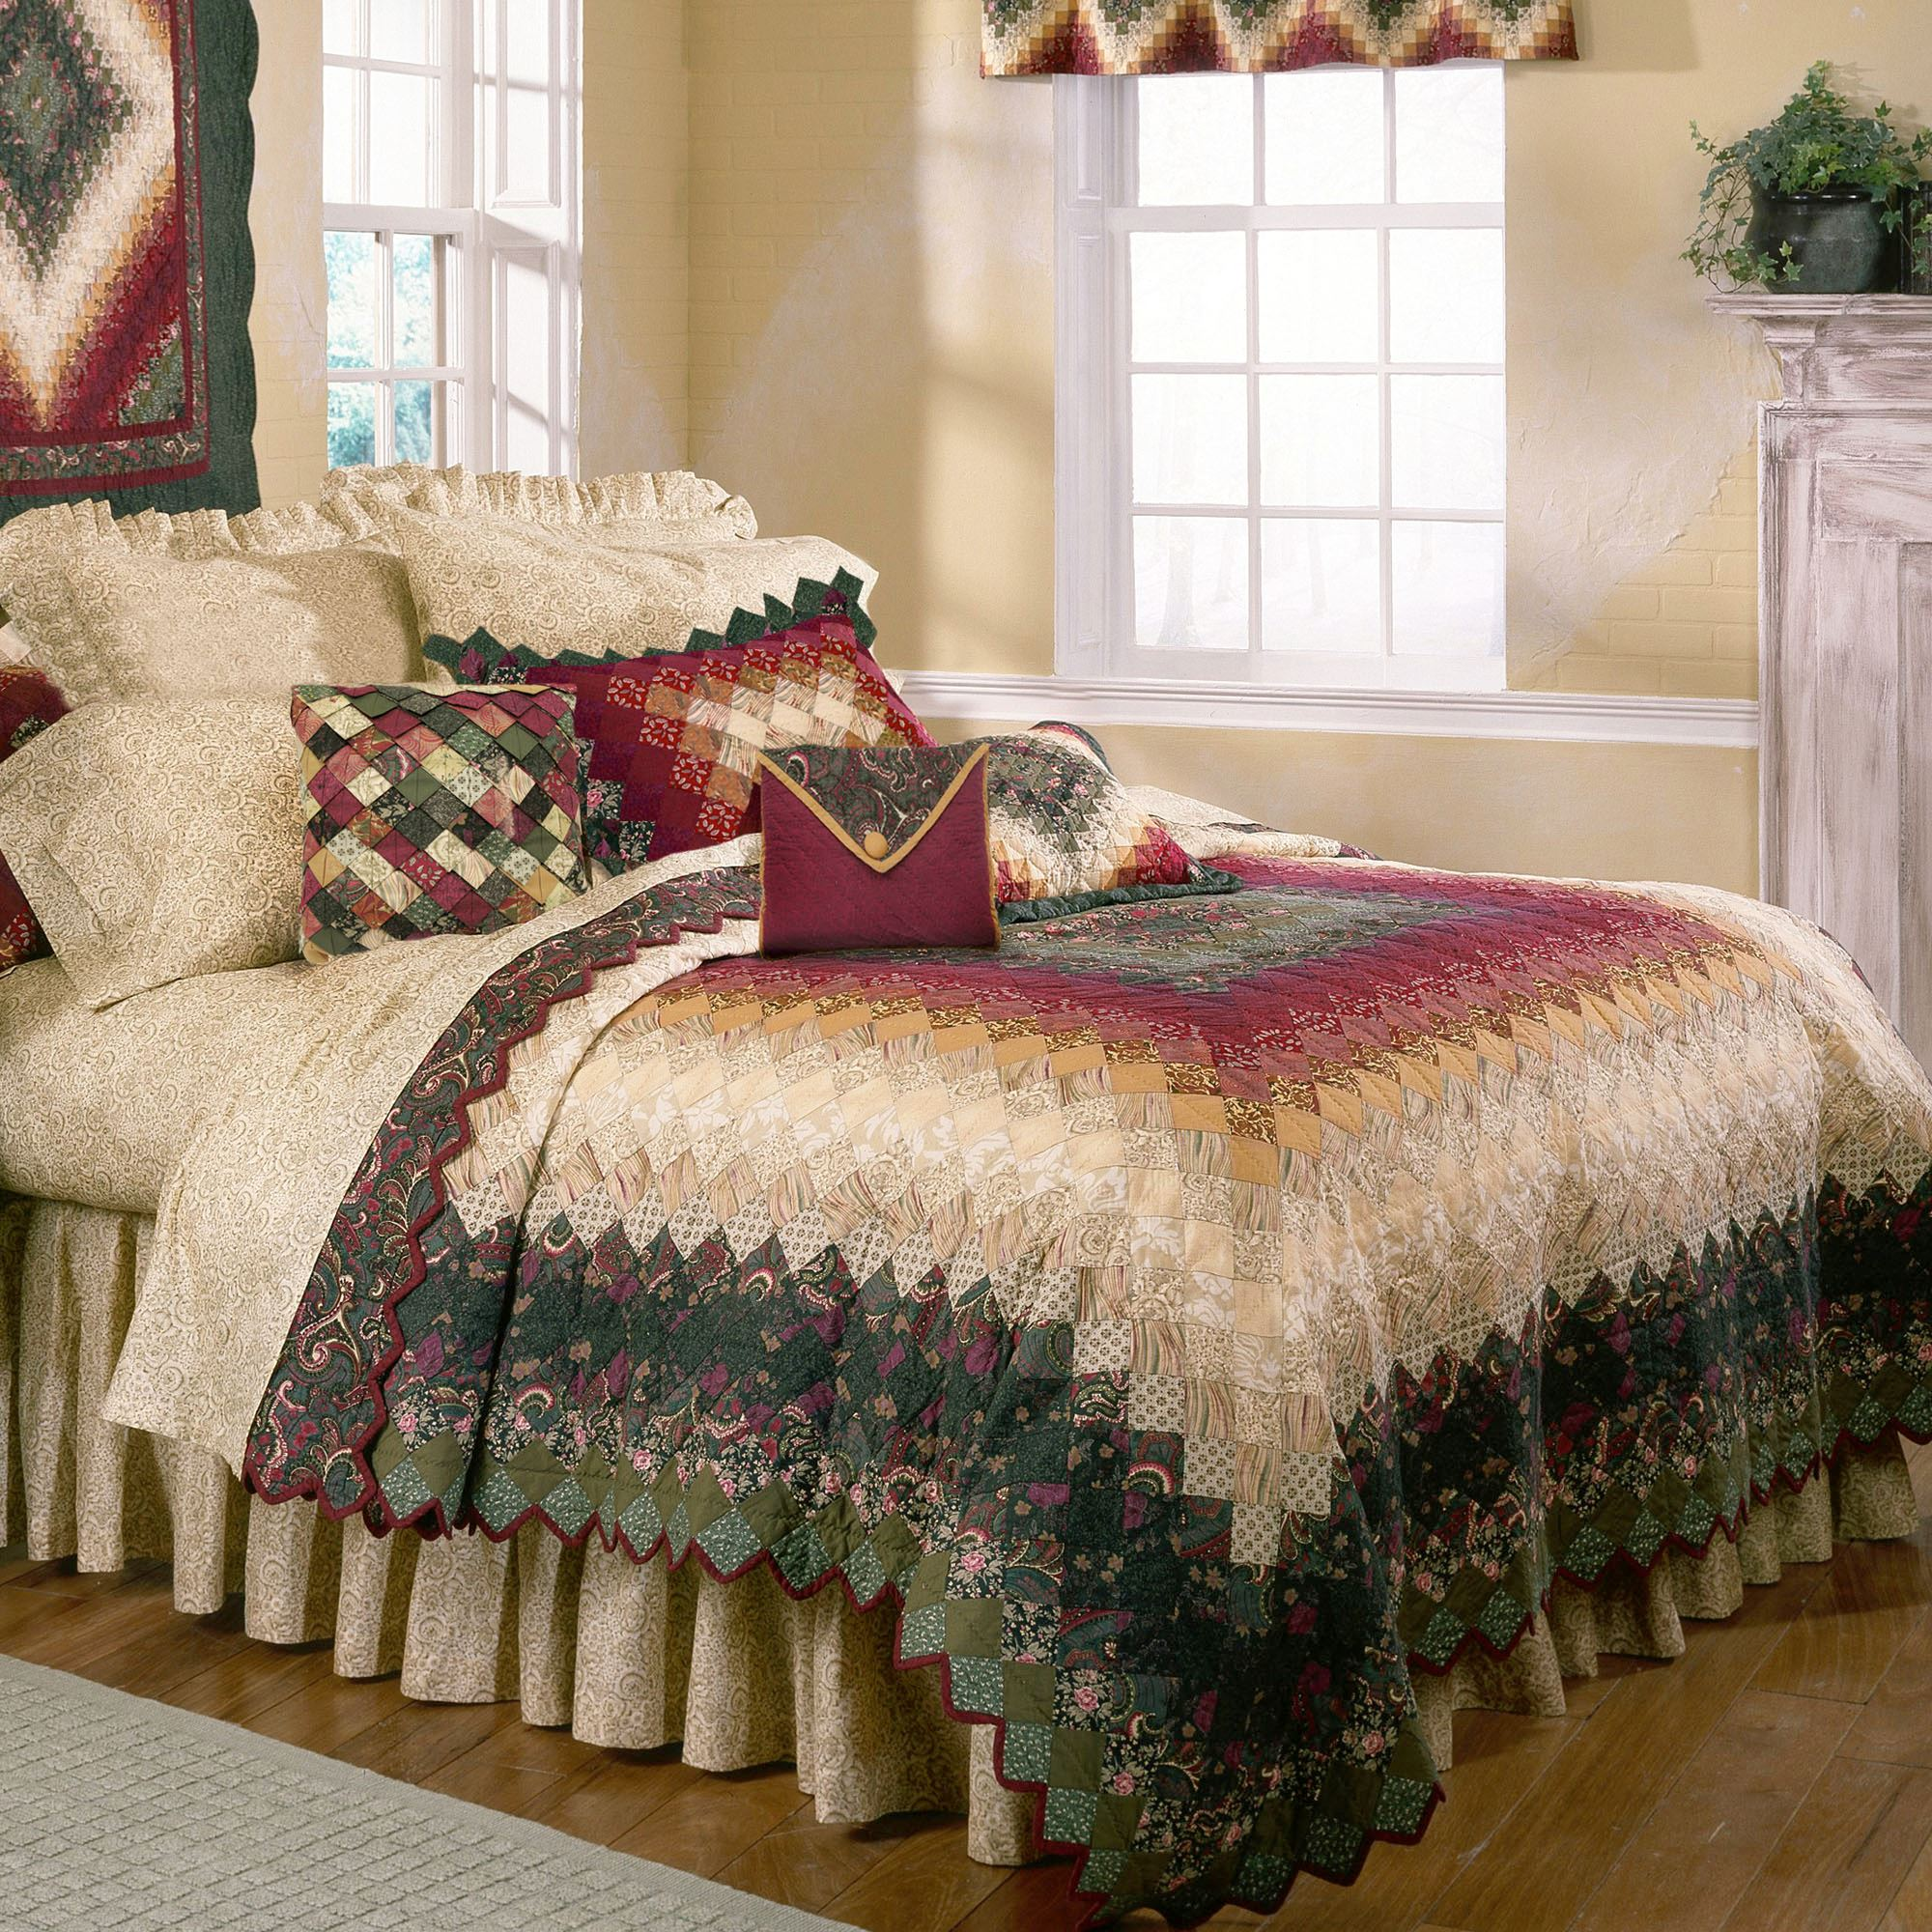 Spice Trip Ii Patchwork Quilt Bedding By Donna Sharp